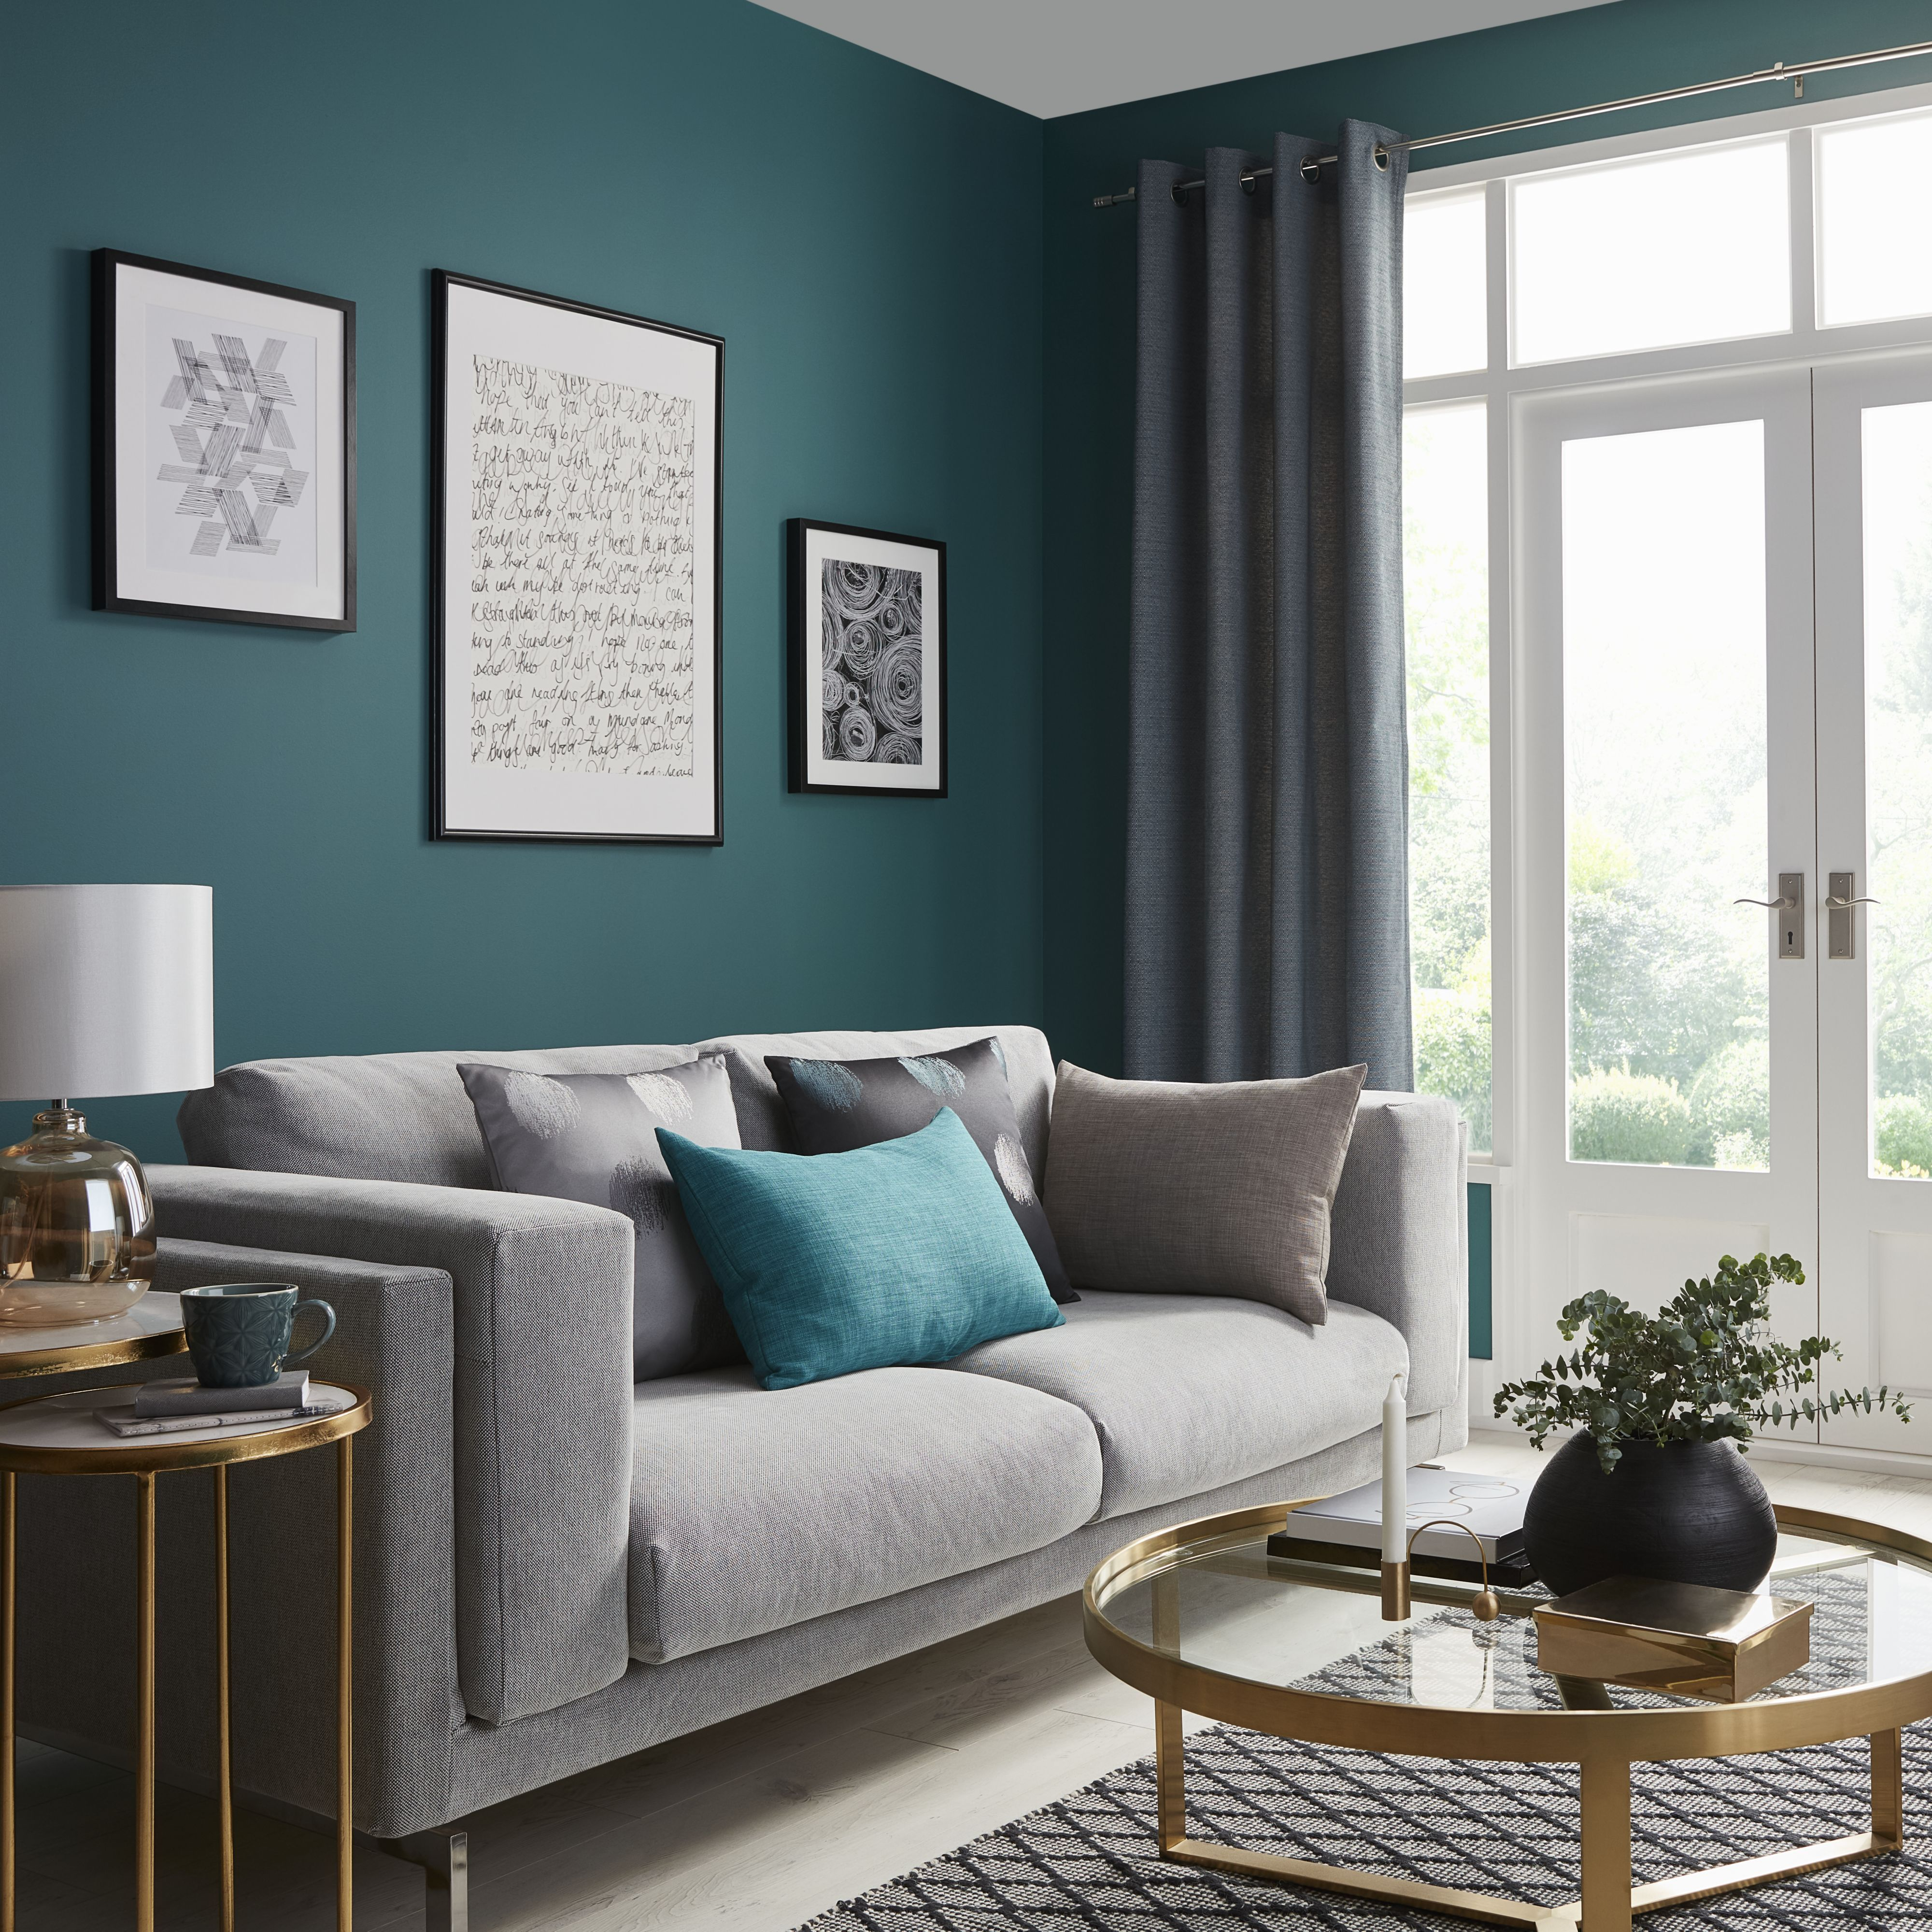 Living Room Decor Modern Image By Debbie Clark On Tiny Flat In 2020 Blue Living Room Simple Living Room Decor